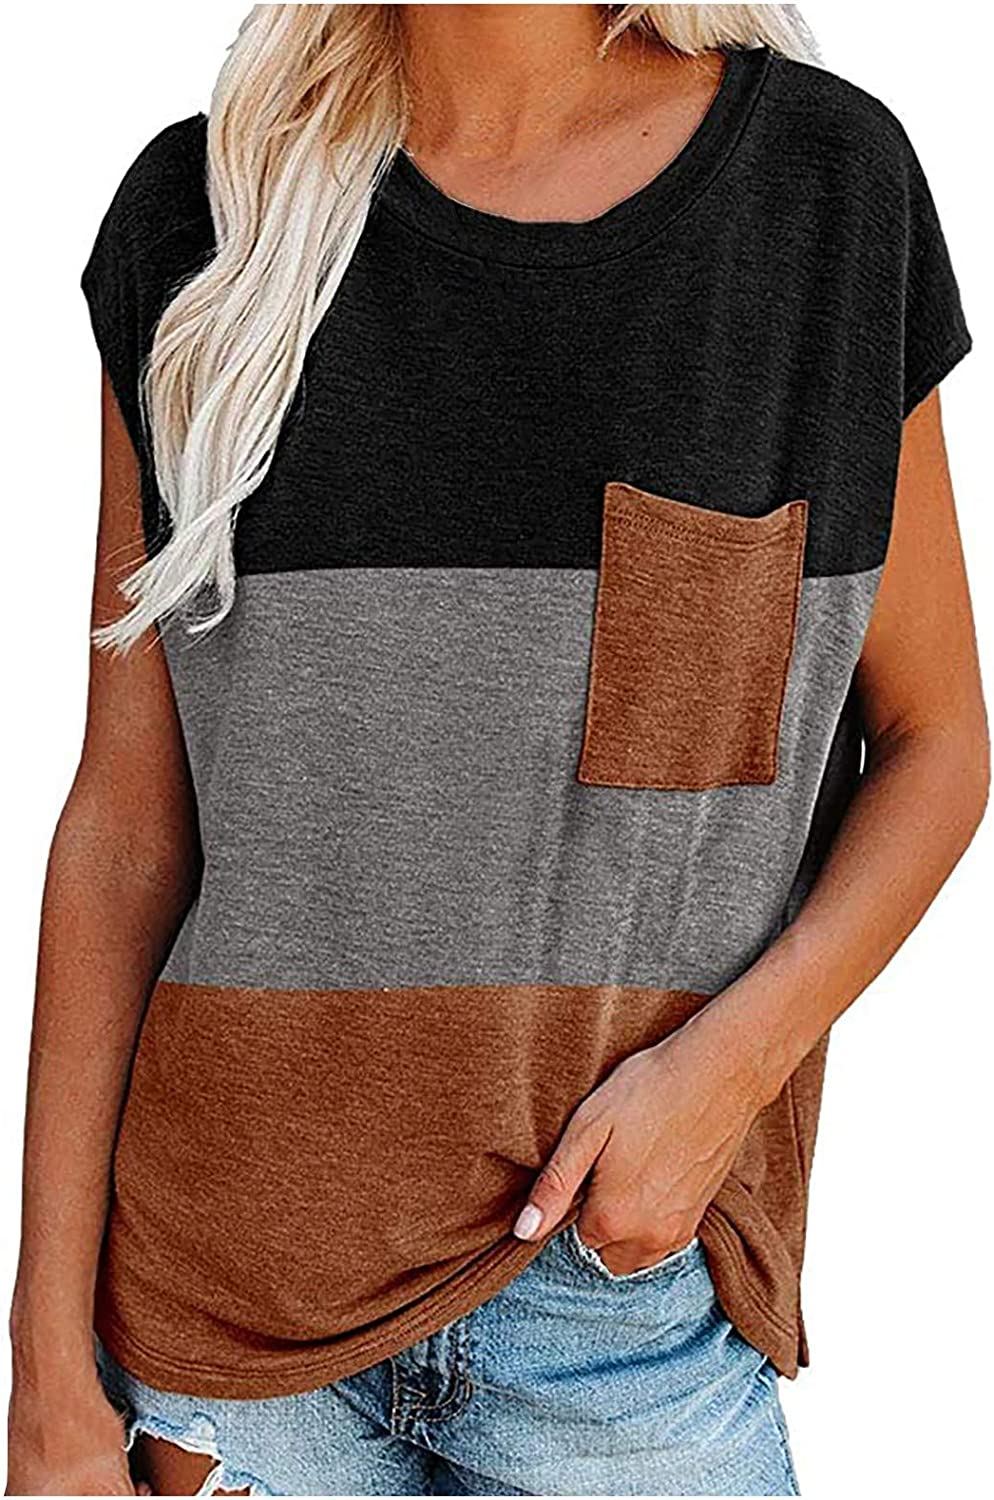 FABIURT Womens Short Sleeve Tops,Women Color Block Printed T Shirt Summer Casual Loose Tee Blouse Tunic Tops with Pocket